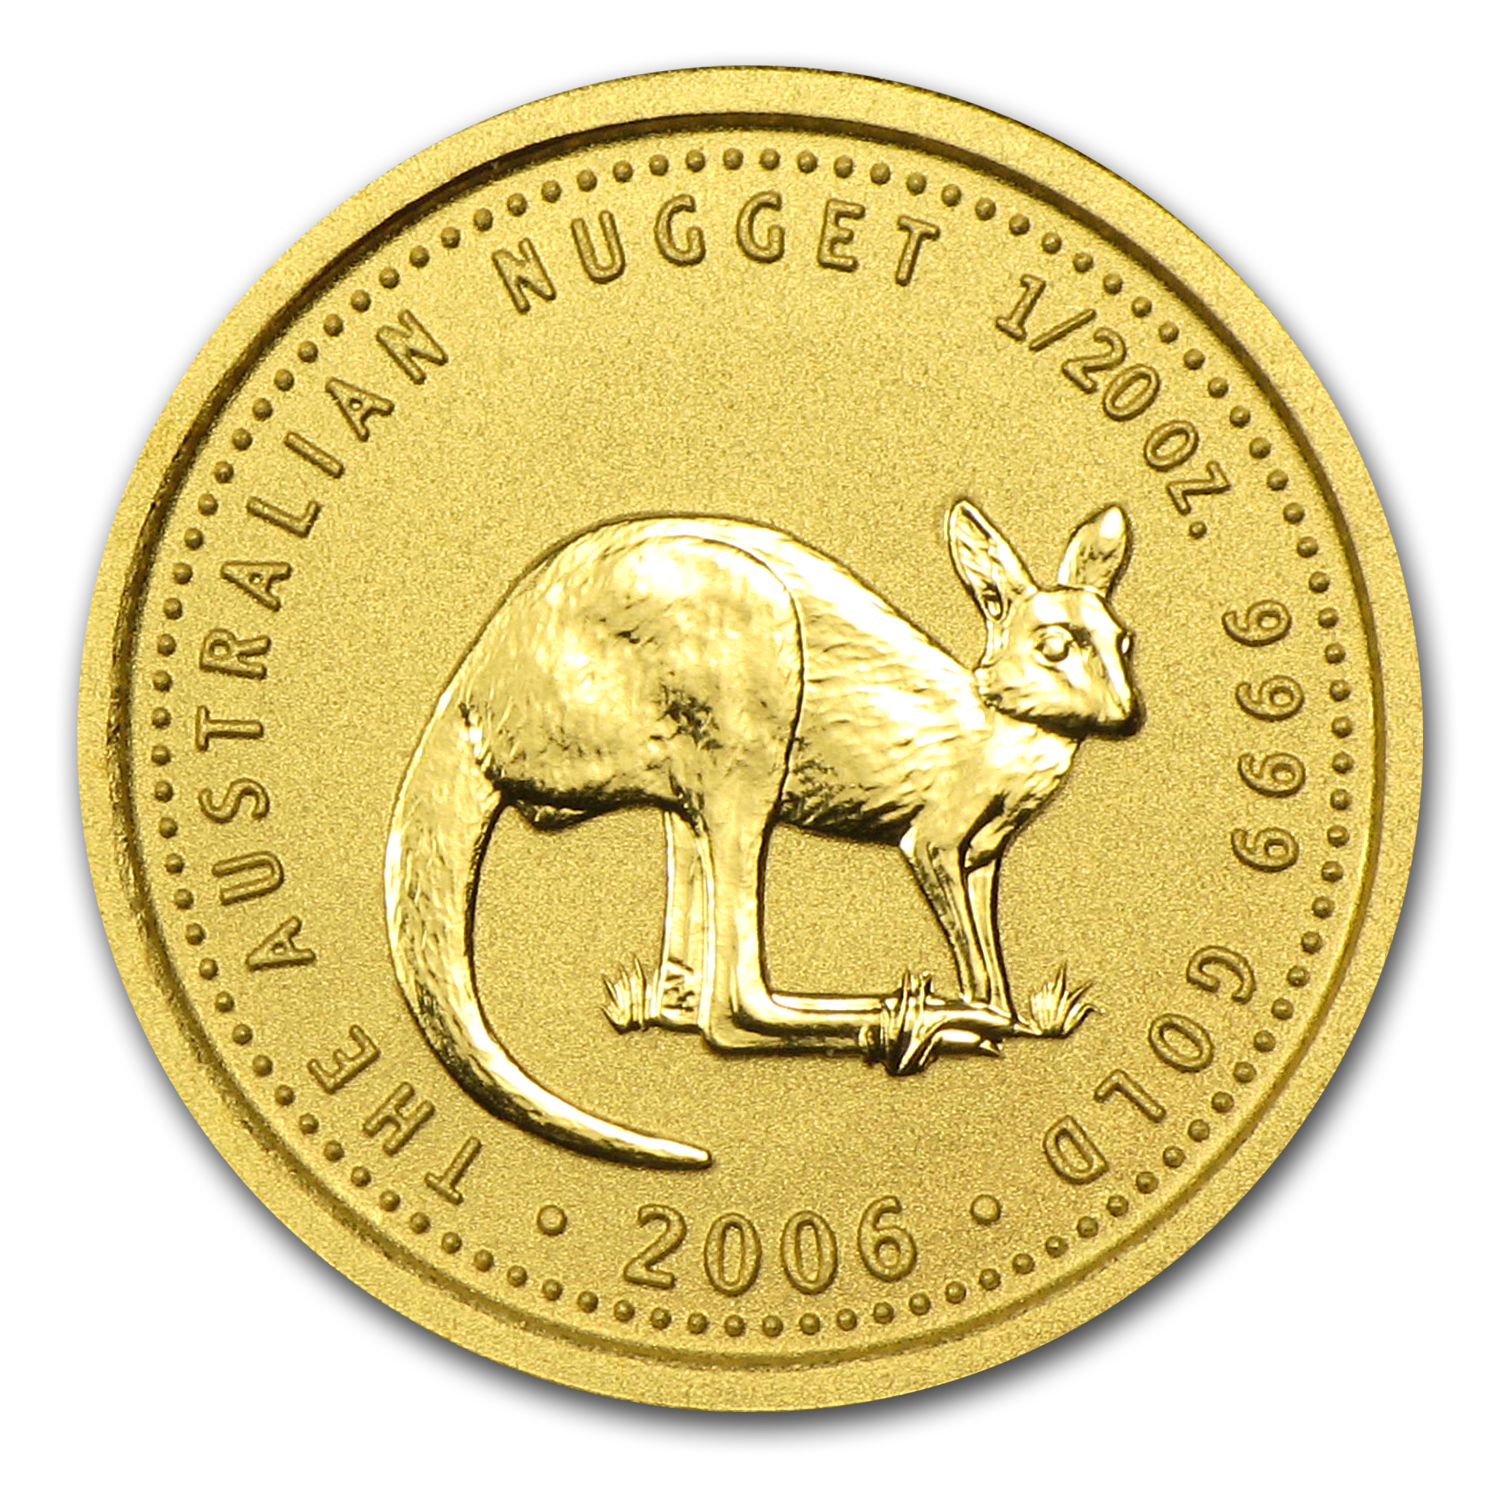 2006 Australia 1/20 oz Gold Nugget